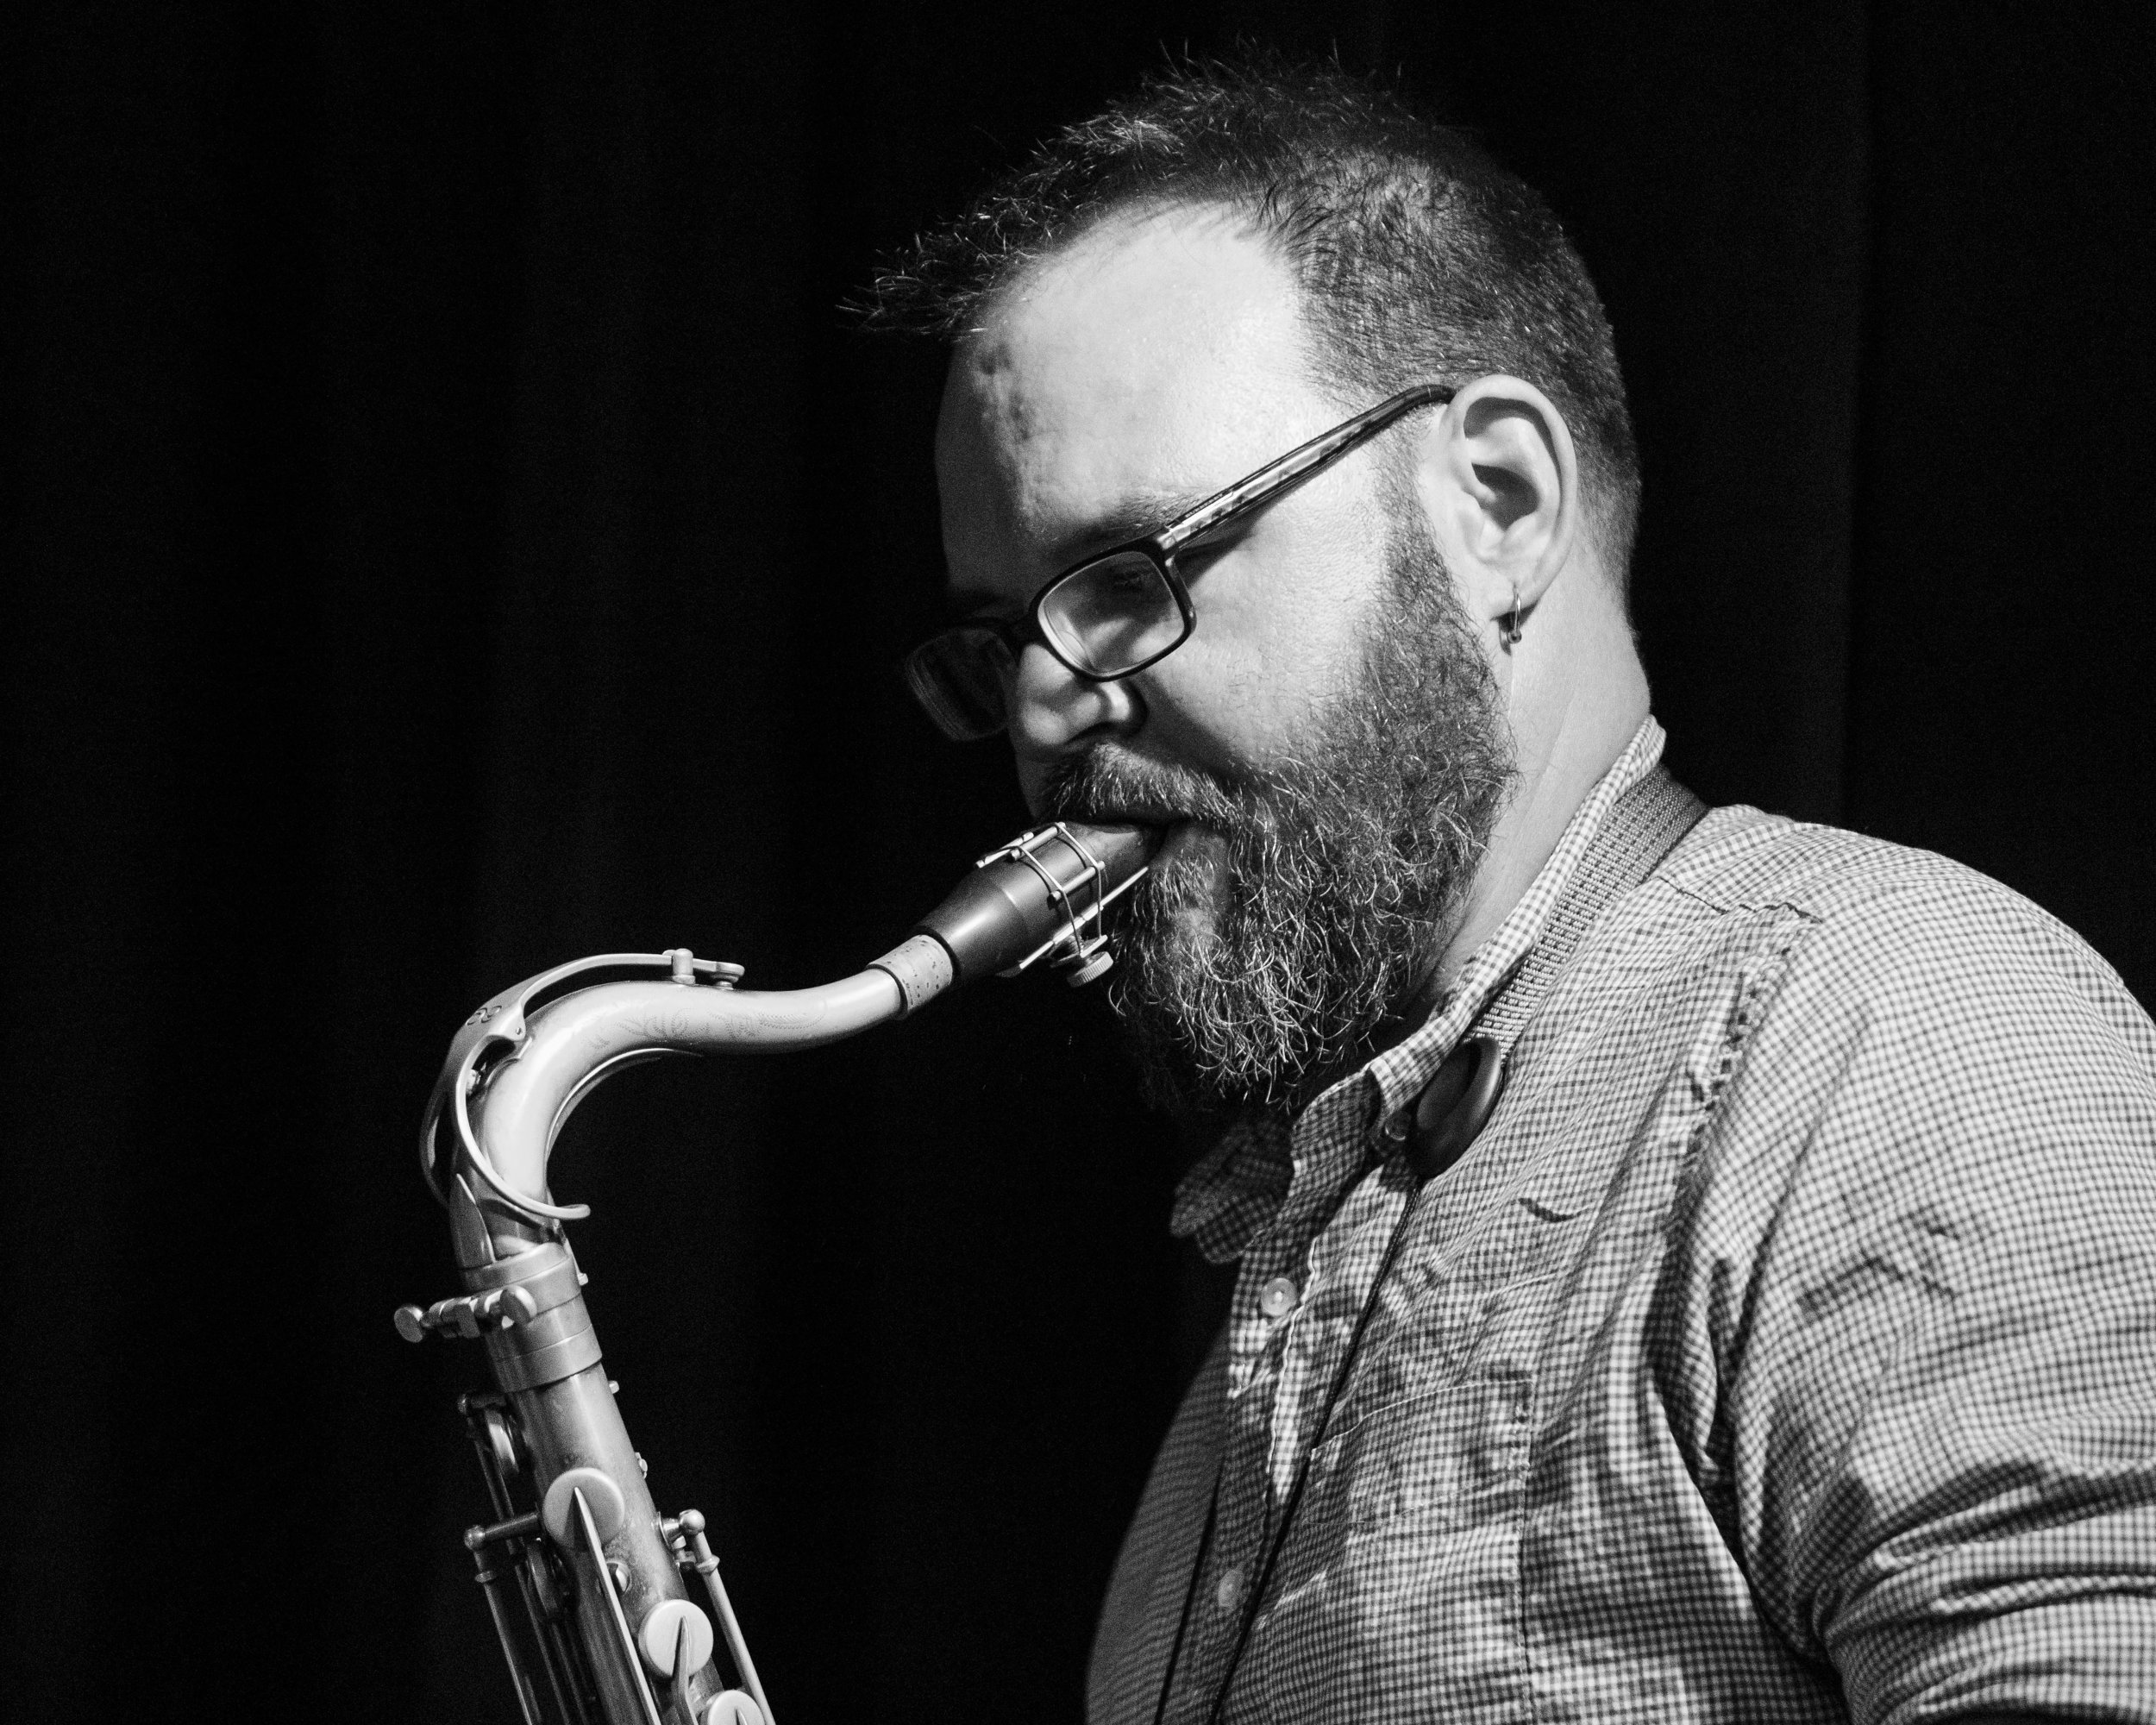 Keith Kelly on saxophone with Union 32 playing scandinavian jazz